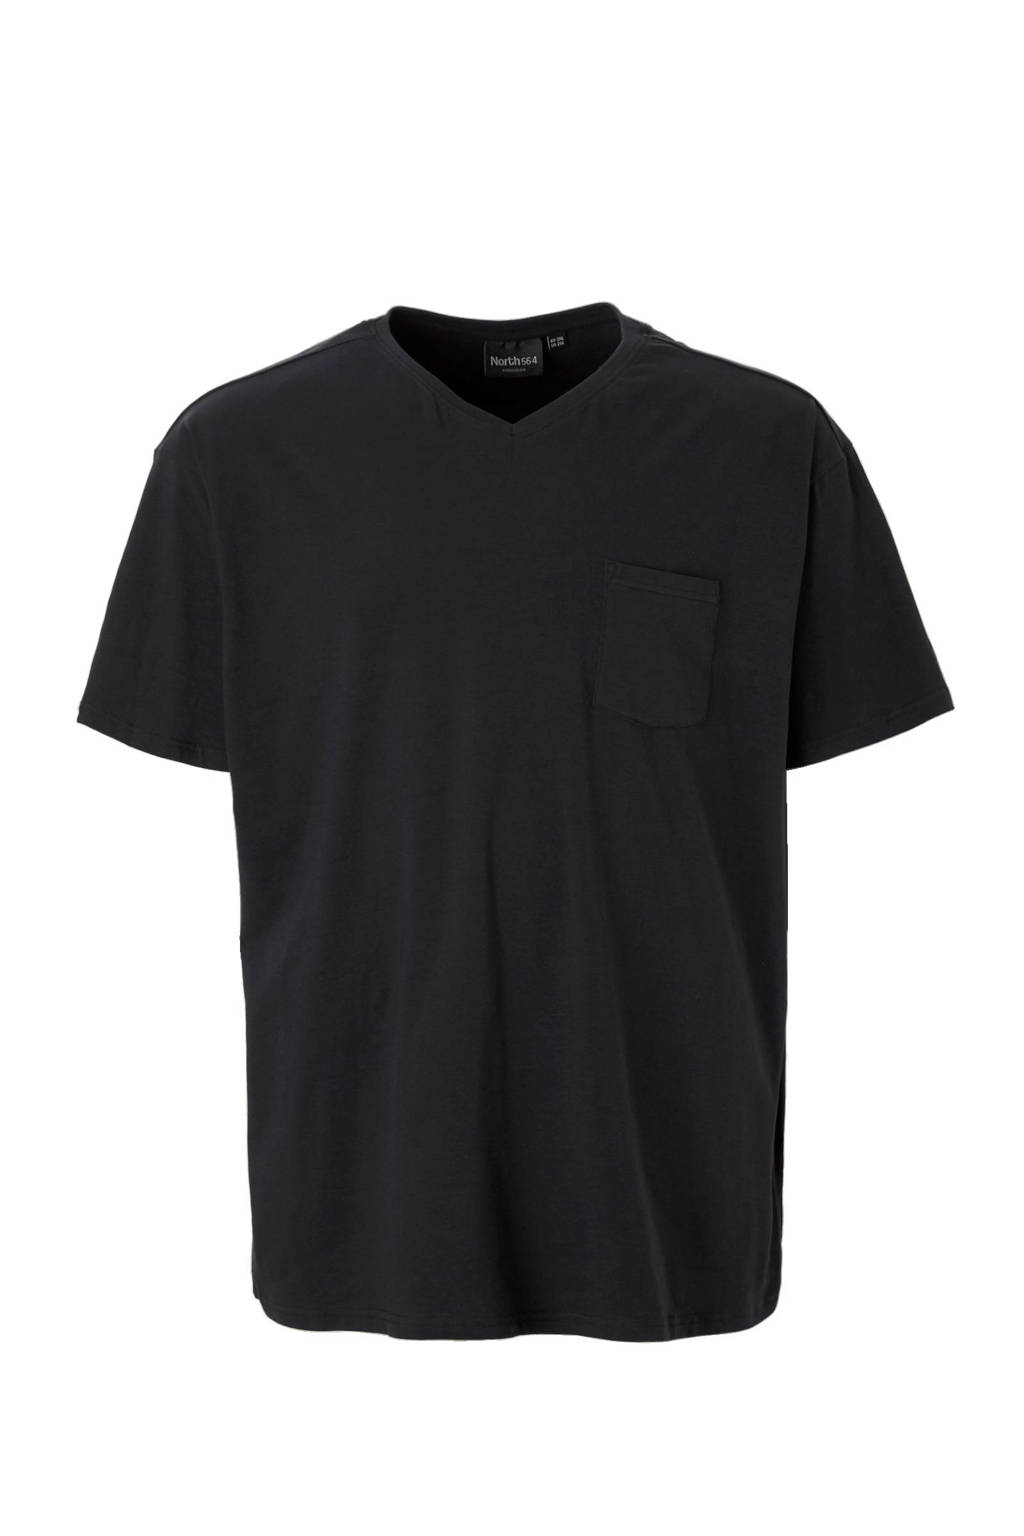 North 56°4 +size T-shirt zwart, Zwart